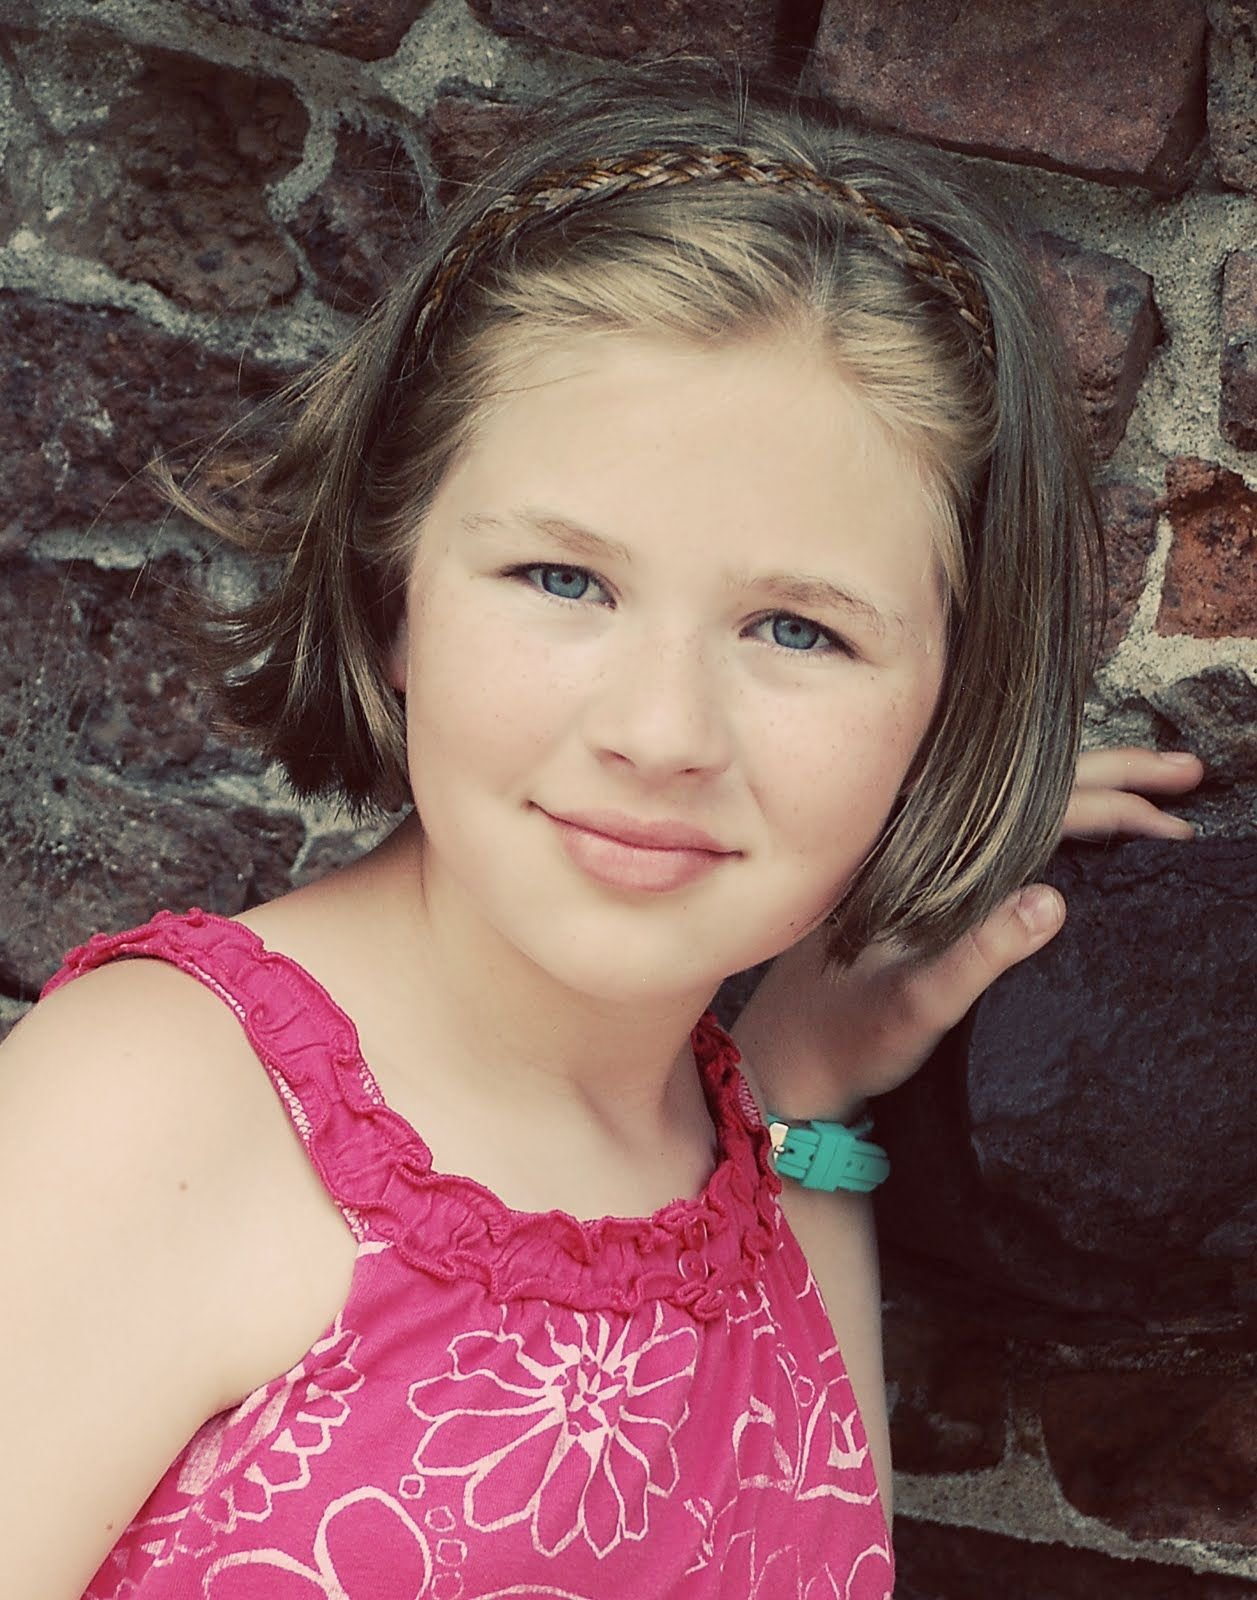 New Haircuts For 8 Year Old Girls My 10 Year Old For Ideas With Pictures Original 1024 x 768